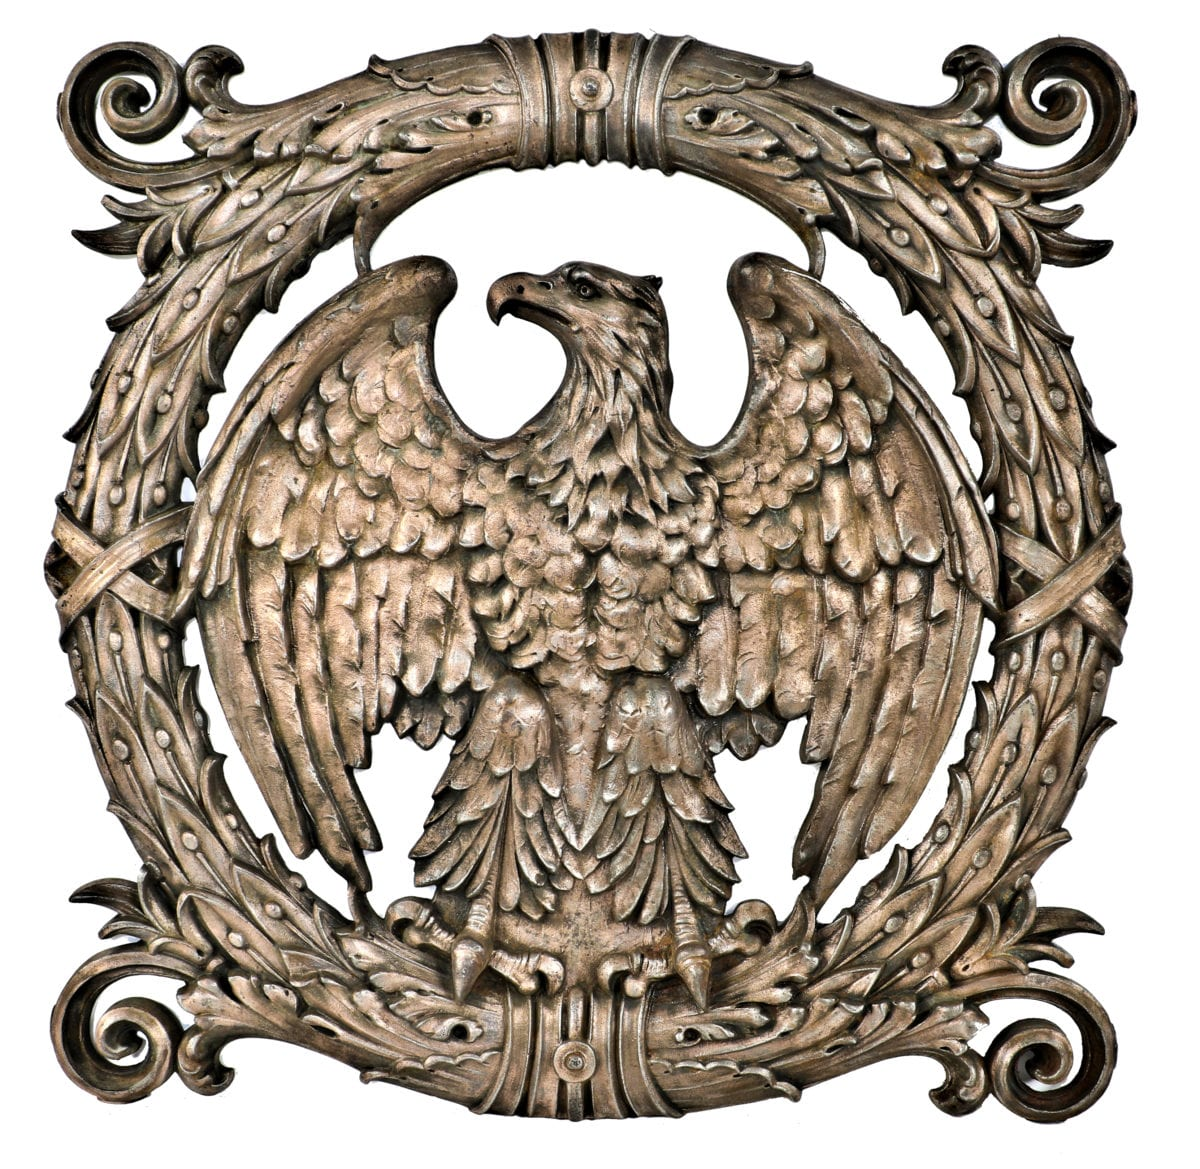 Eagle themed cast iron federal building elevator panel added to 51 museum recently acquired an exceptional copper plated ornamental figural cast iron elevator panel and full bodied eagle the latter is an attribution buycottarizona Gallery